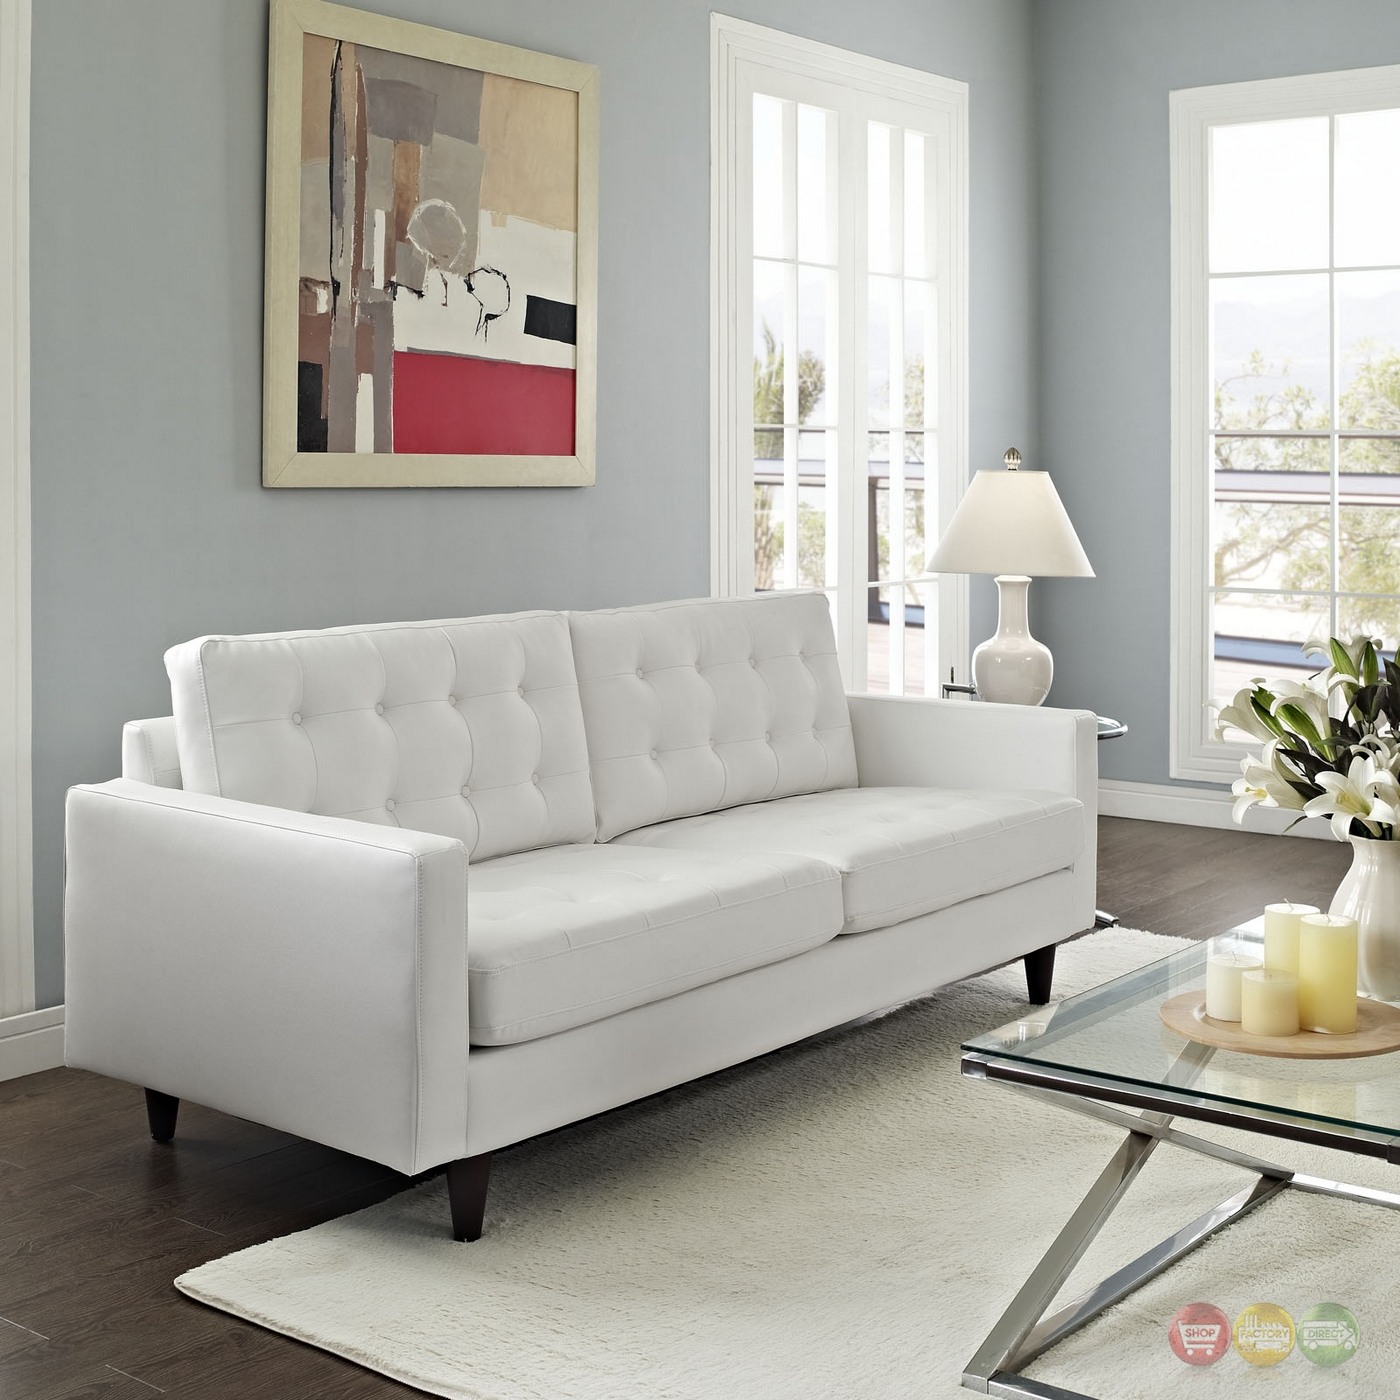 Empress contemporary button tufted leather sofa white for Modern white furniture